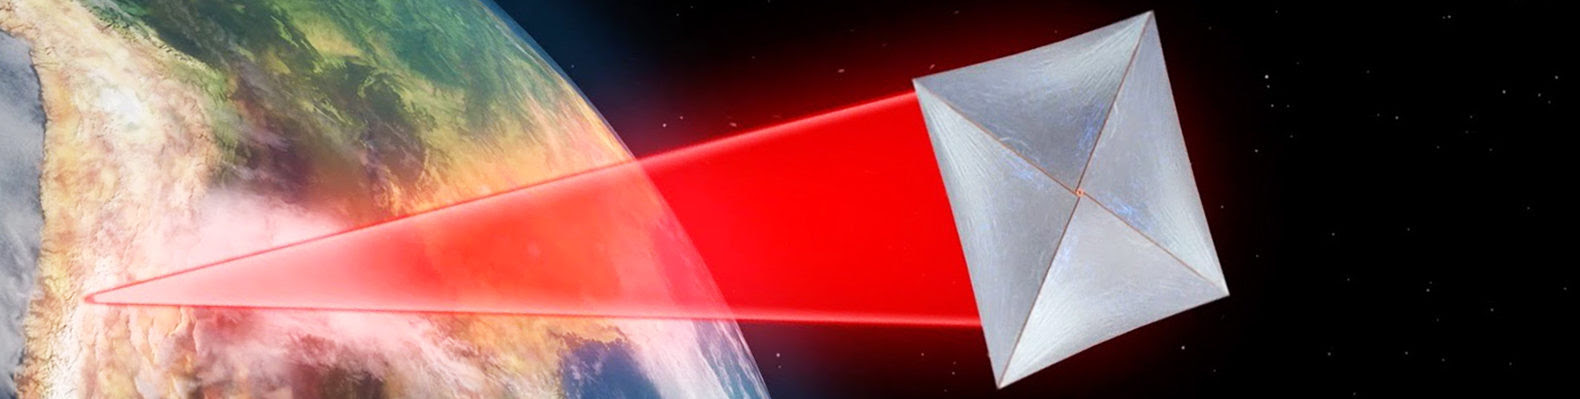 Breakthrough Starshot spacecraft on its way to Alpha Centauri: Image Credit: Breakthrough Initiatives